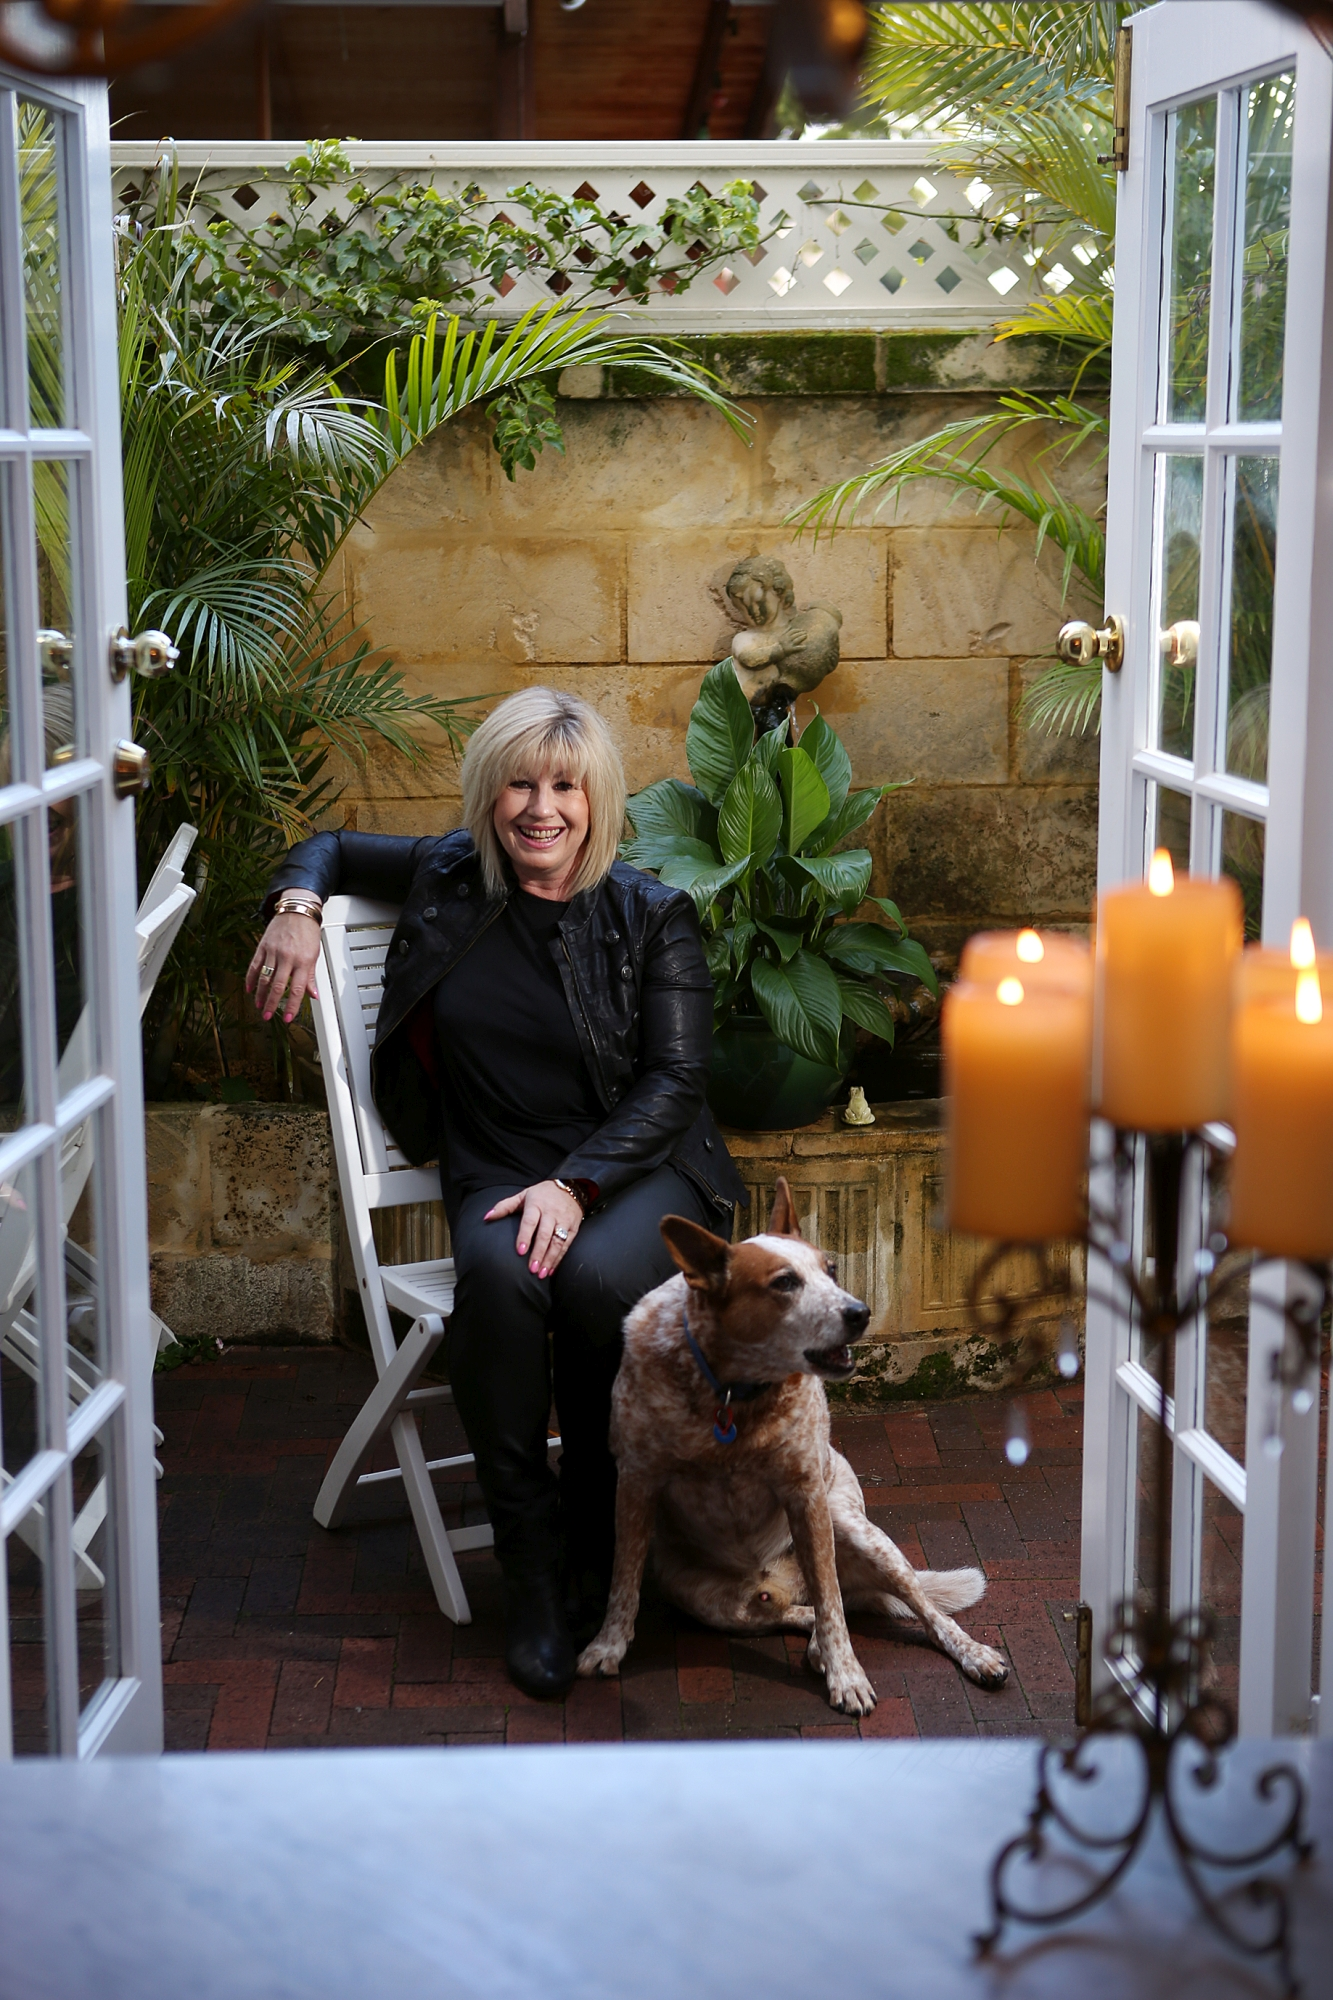 Alison Salmond with her dog Blue.